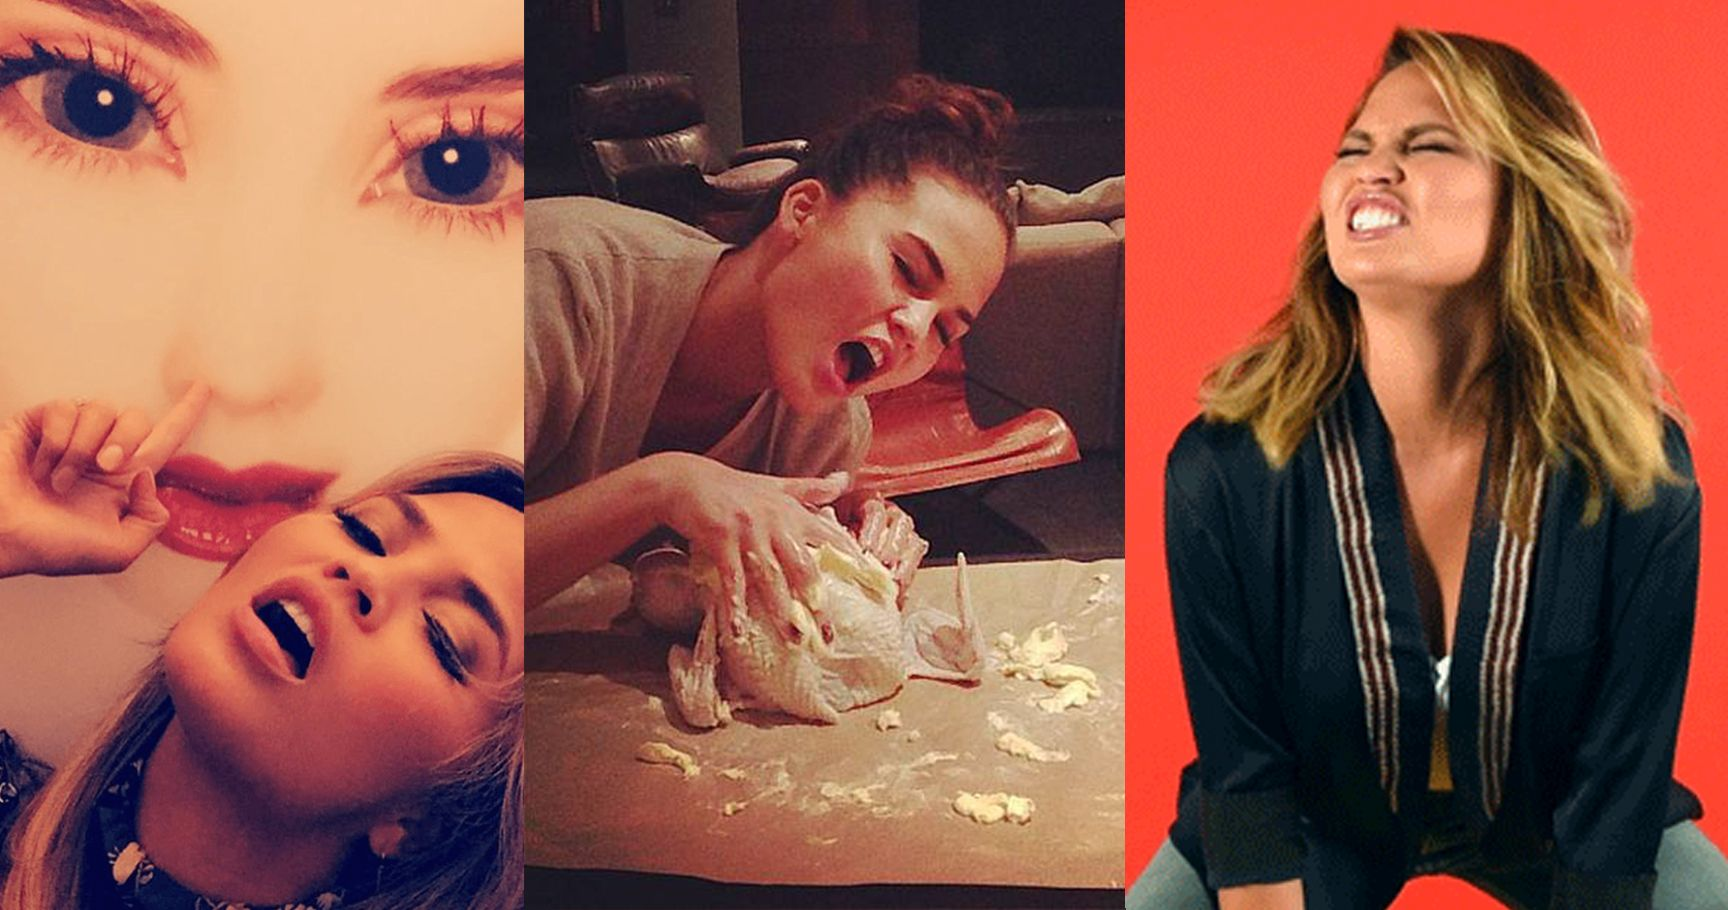 15 Times Chrissy Teigen Was Real AF And We Loved Her For It